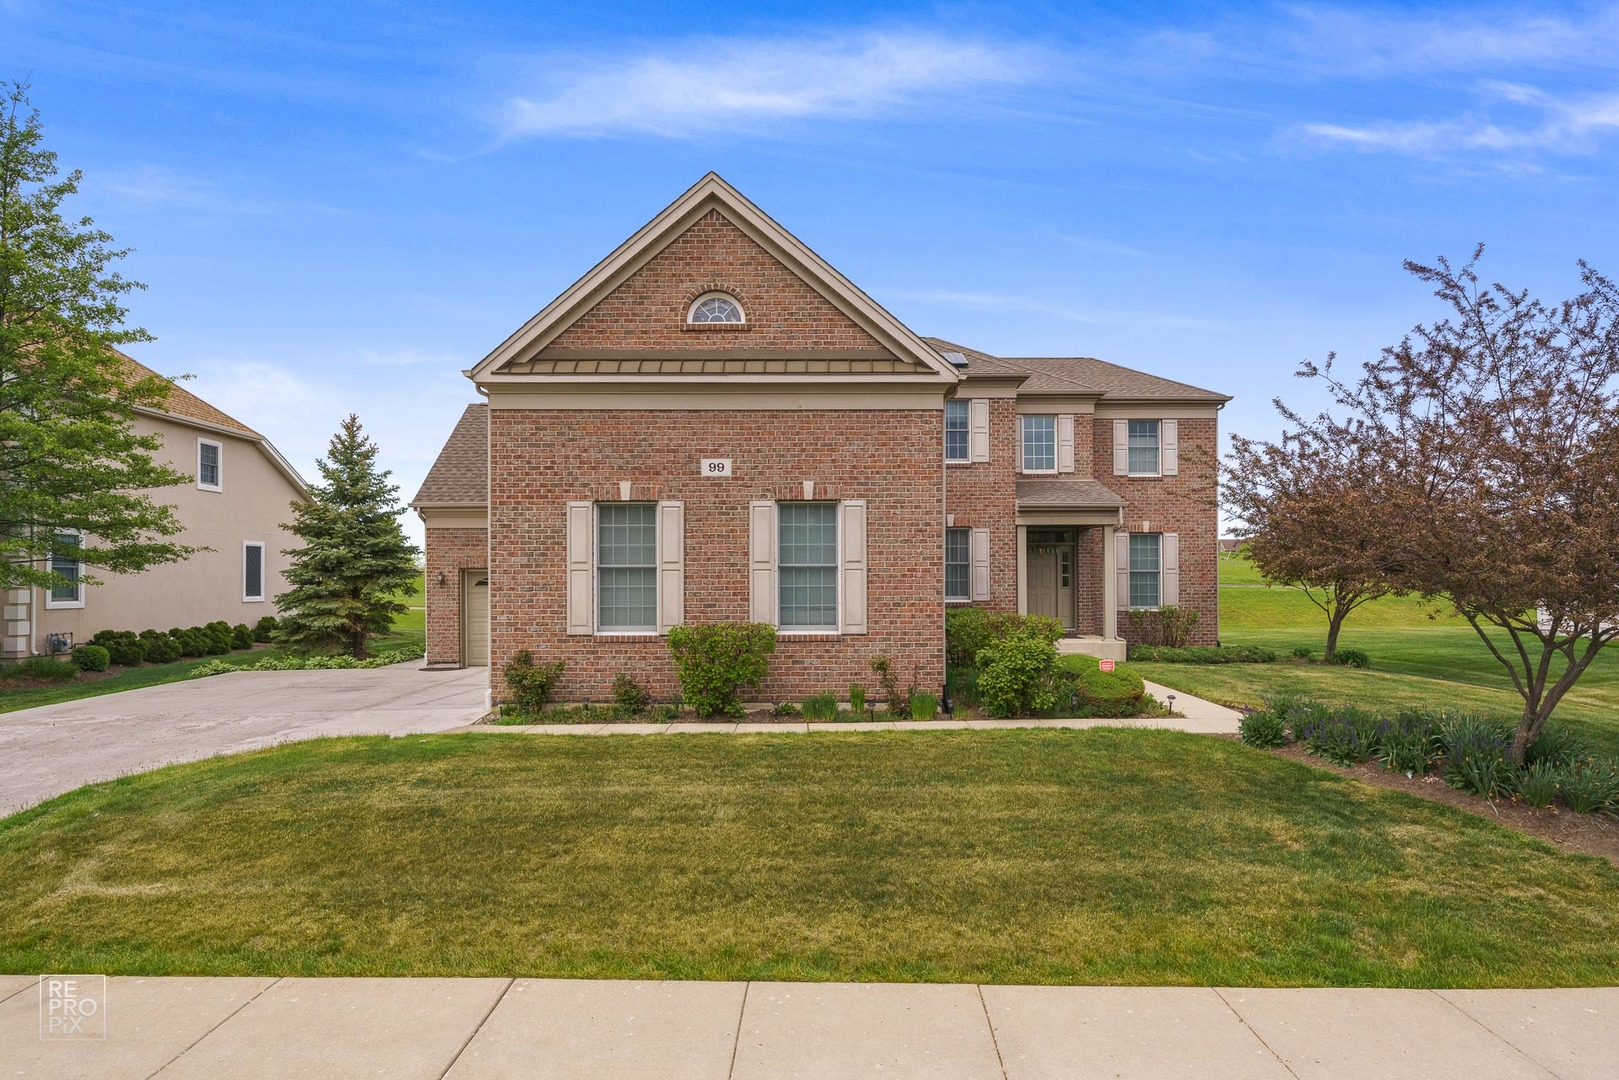 99 Open Parkway, Hawthorn Woods, Il 60047